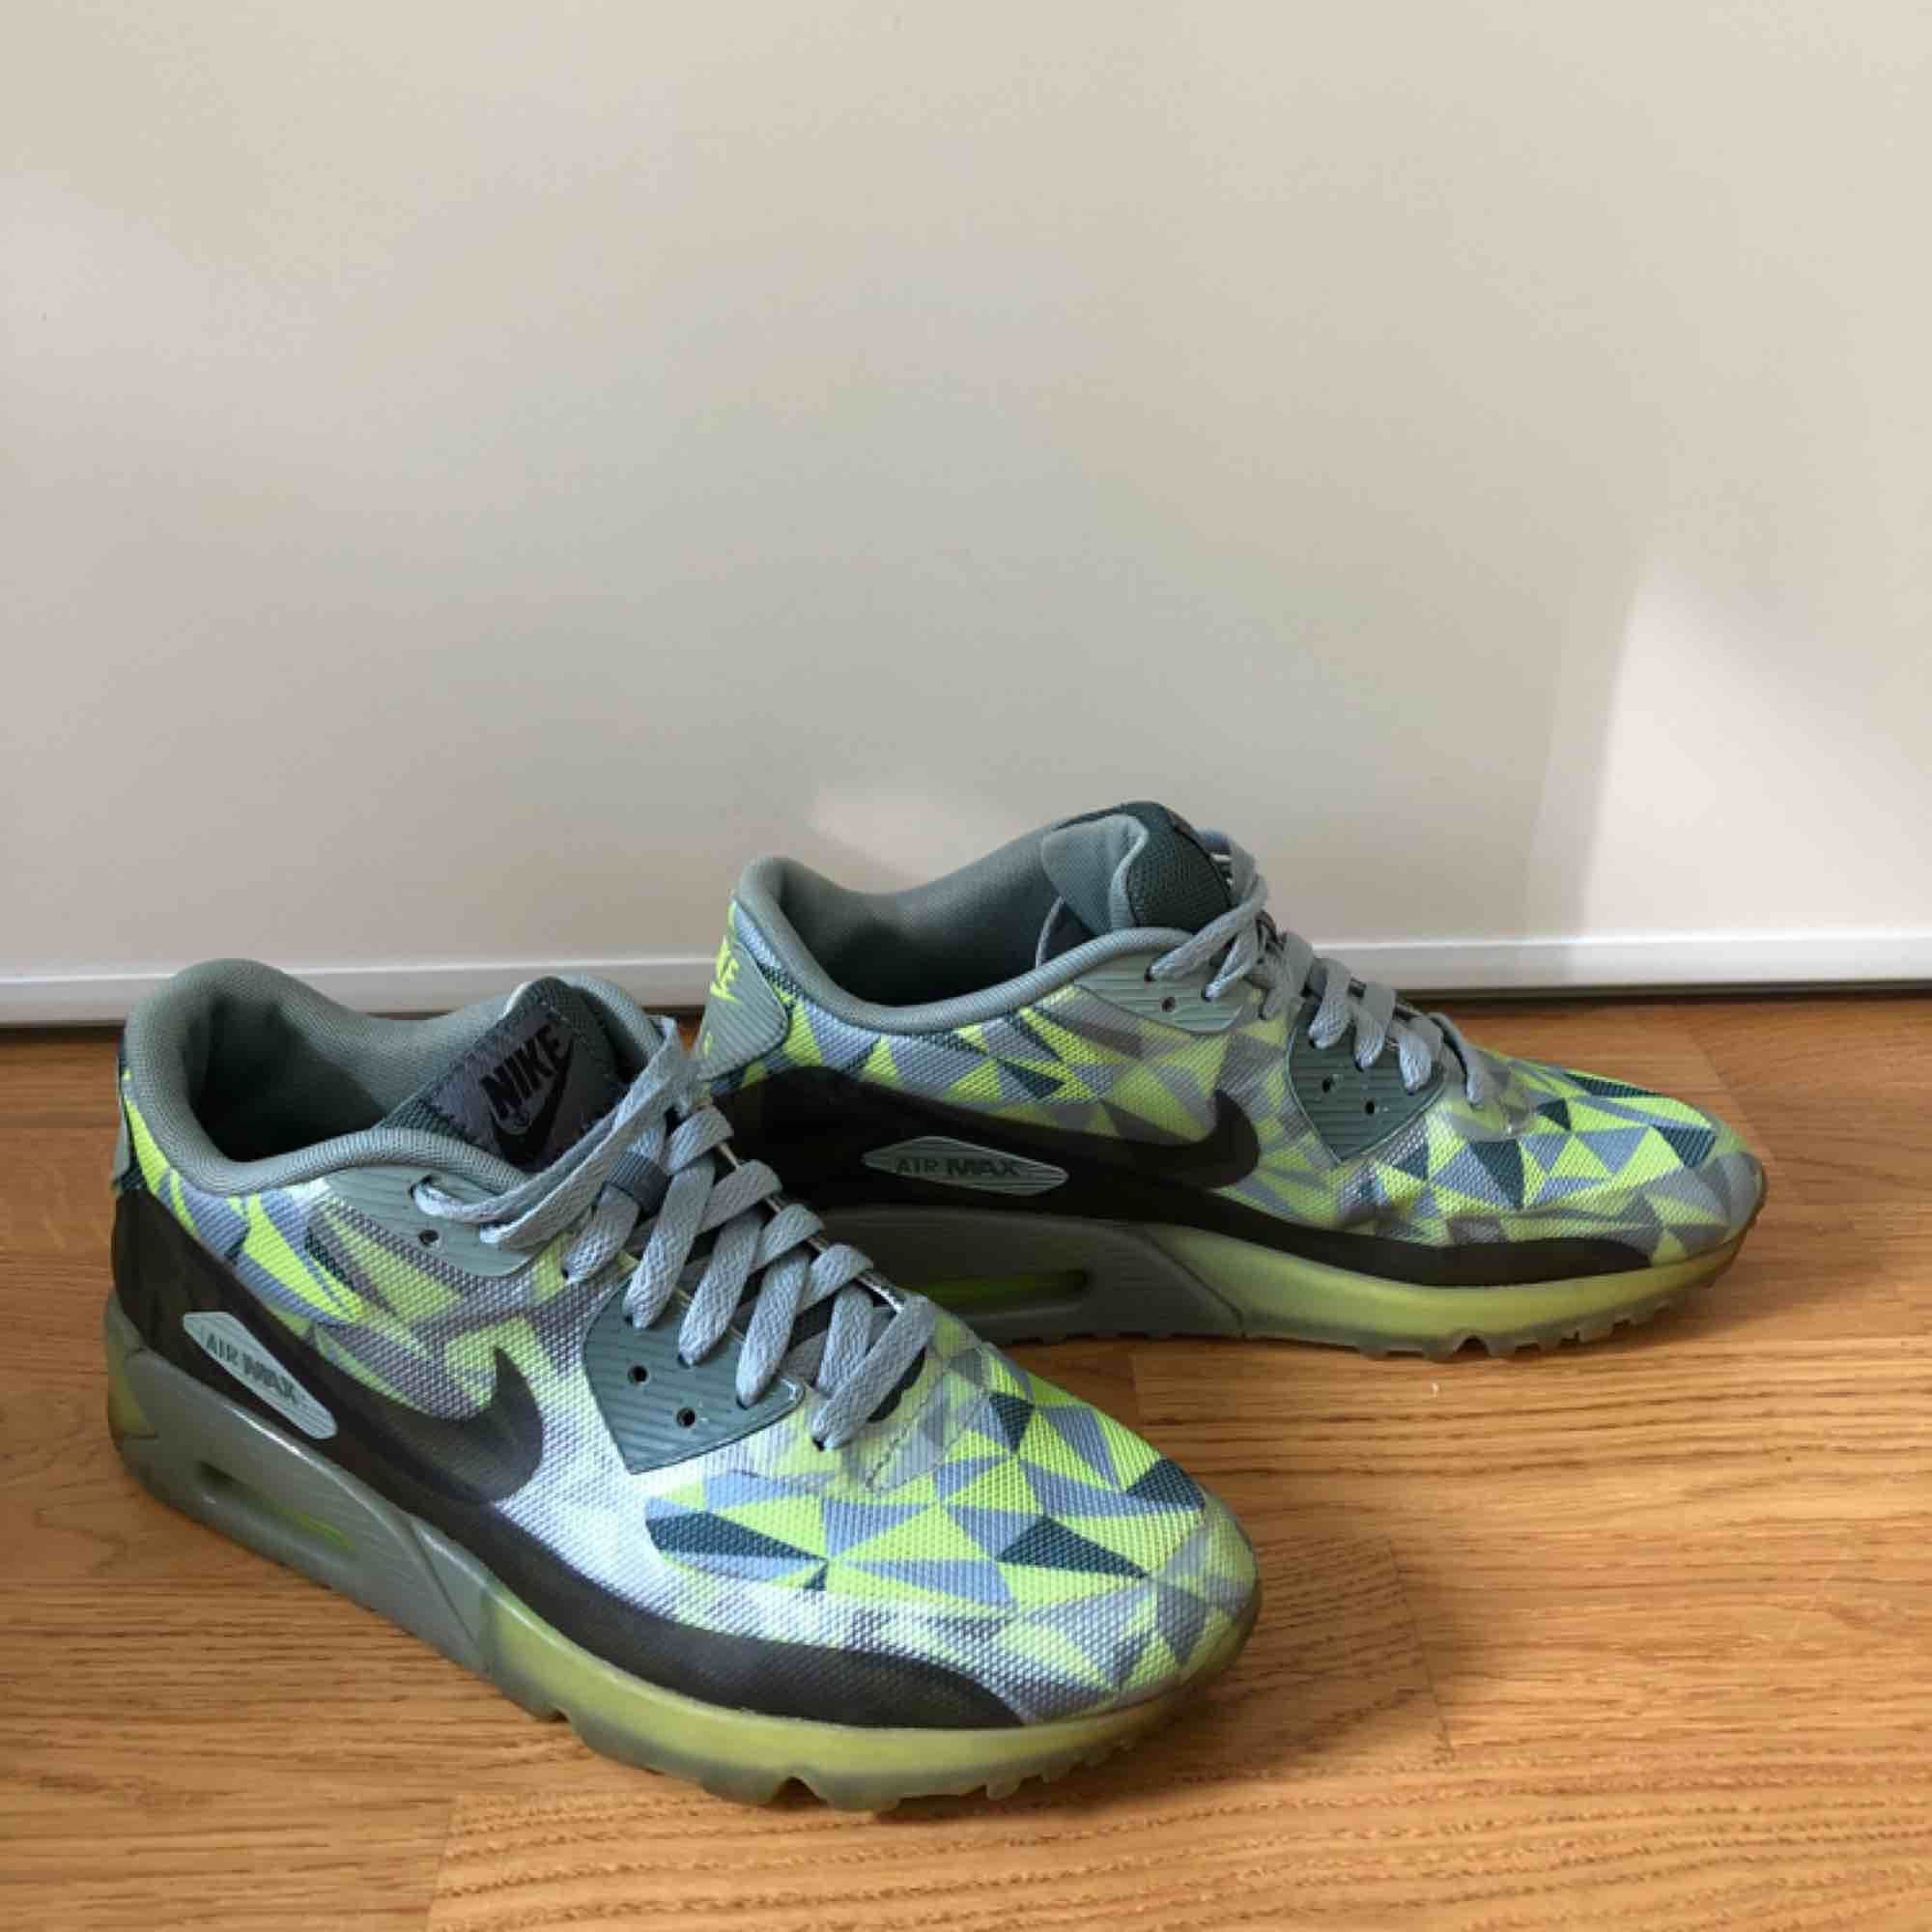 Nike Air Max Art 631748-700 Exclusive colorway from USA  Never saw the same shoes  US. 7.5, EU 40.5 (25.5 sm) . Skor.